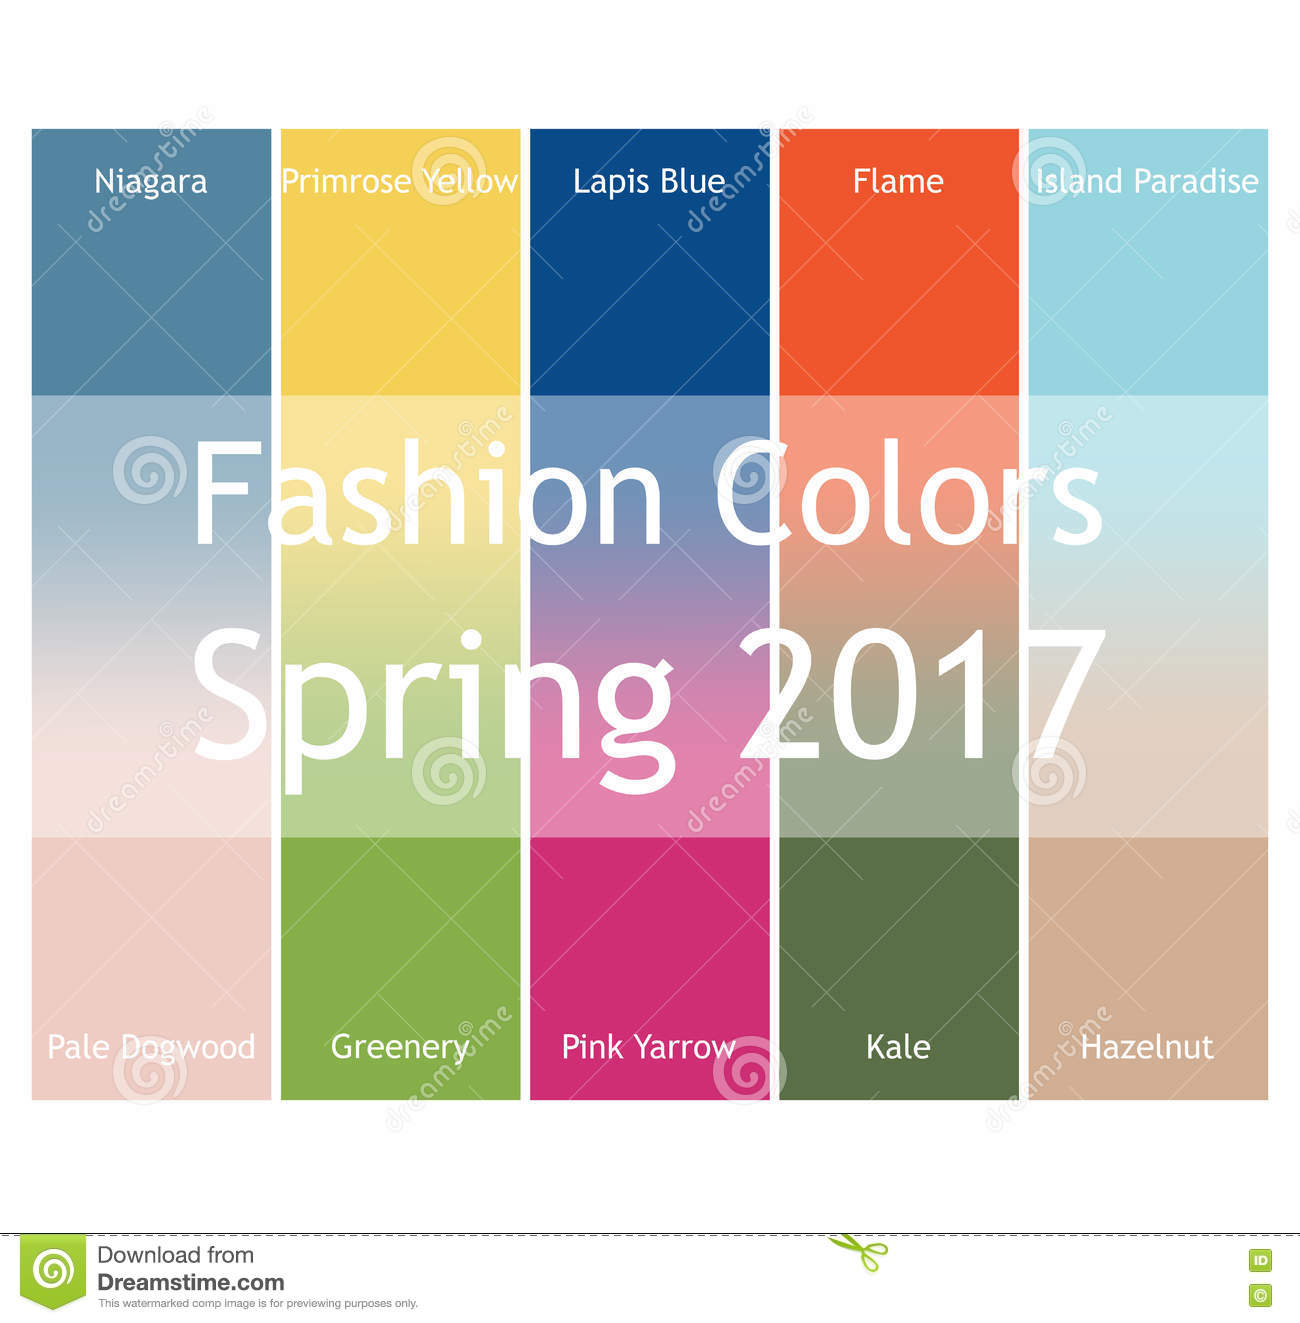 Blurred fashion infographic with trendy colors of the 2017 Spring. Niagara,Primrose Yellow,Lapis Blue,Flame,Island